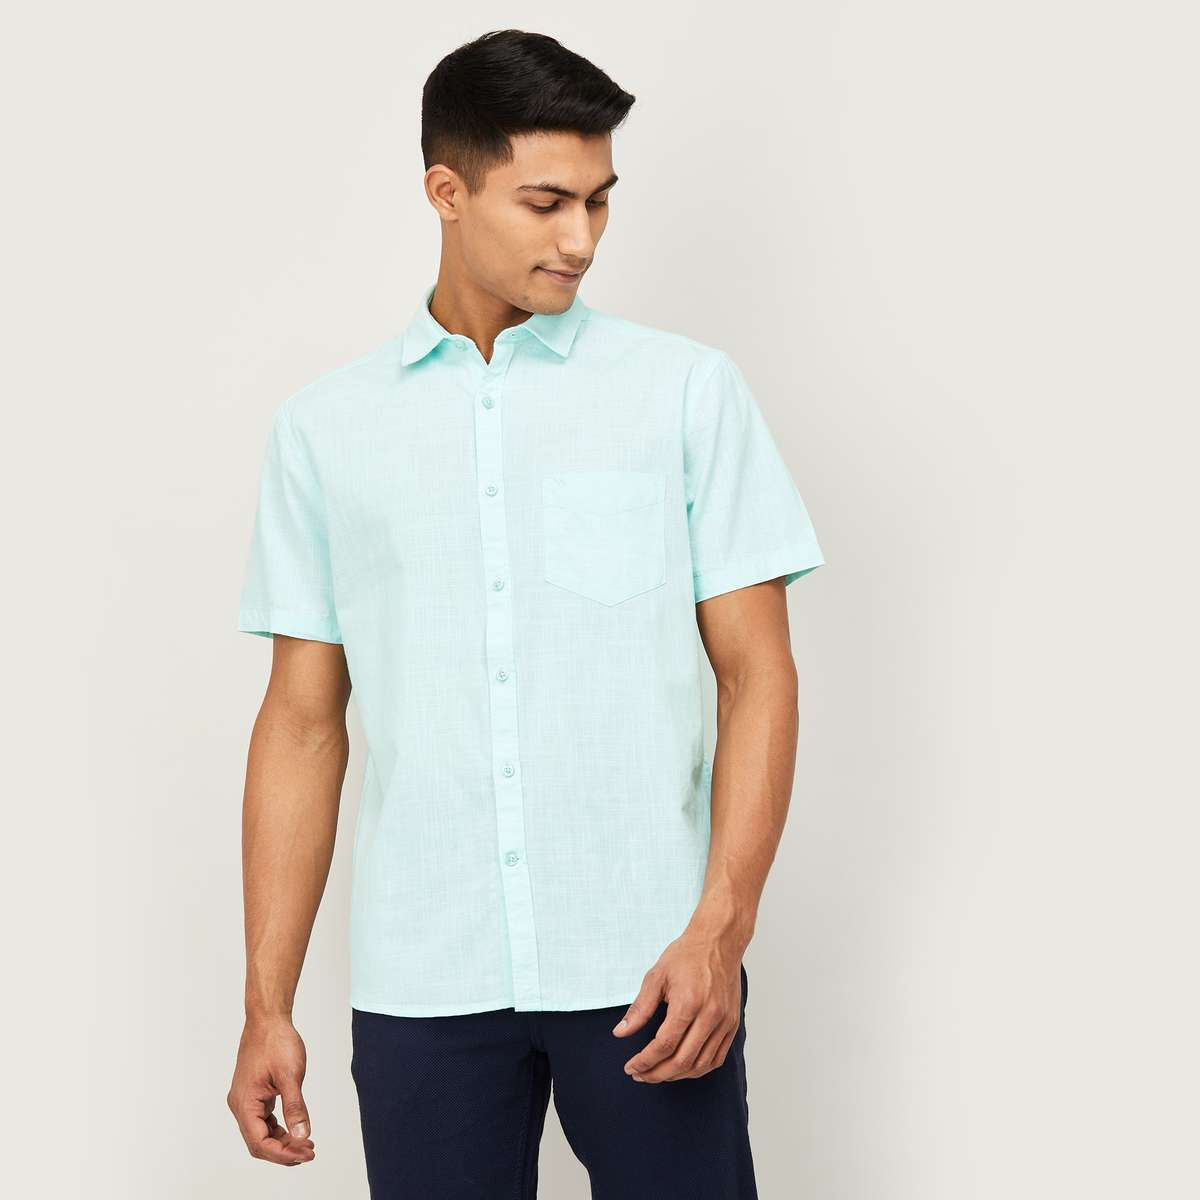 3.CODE Men Solid Regular Fit Casual Shirt